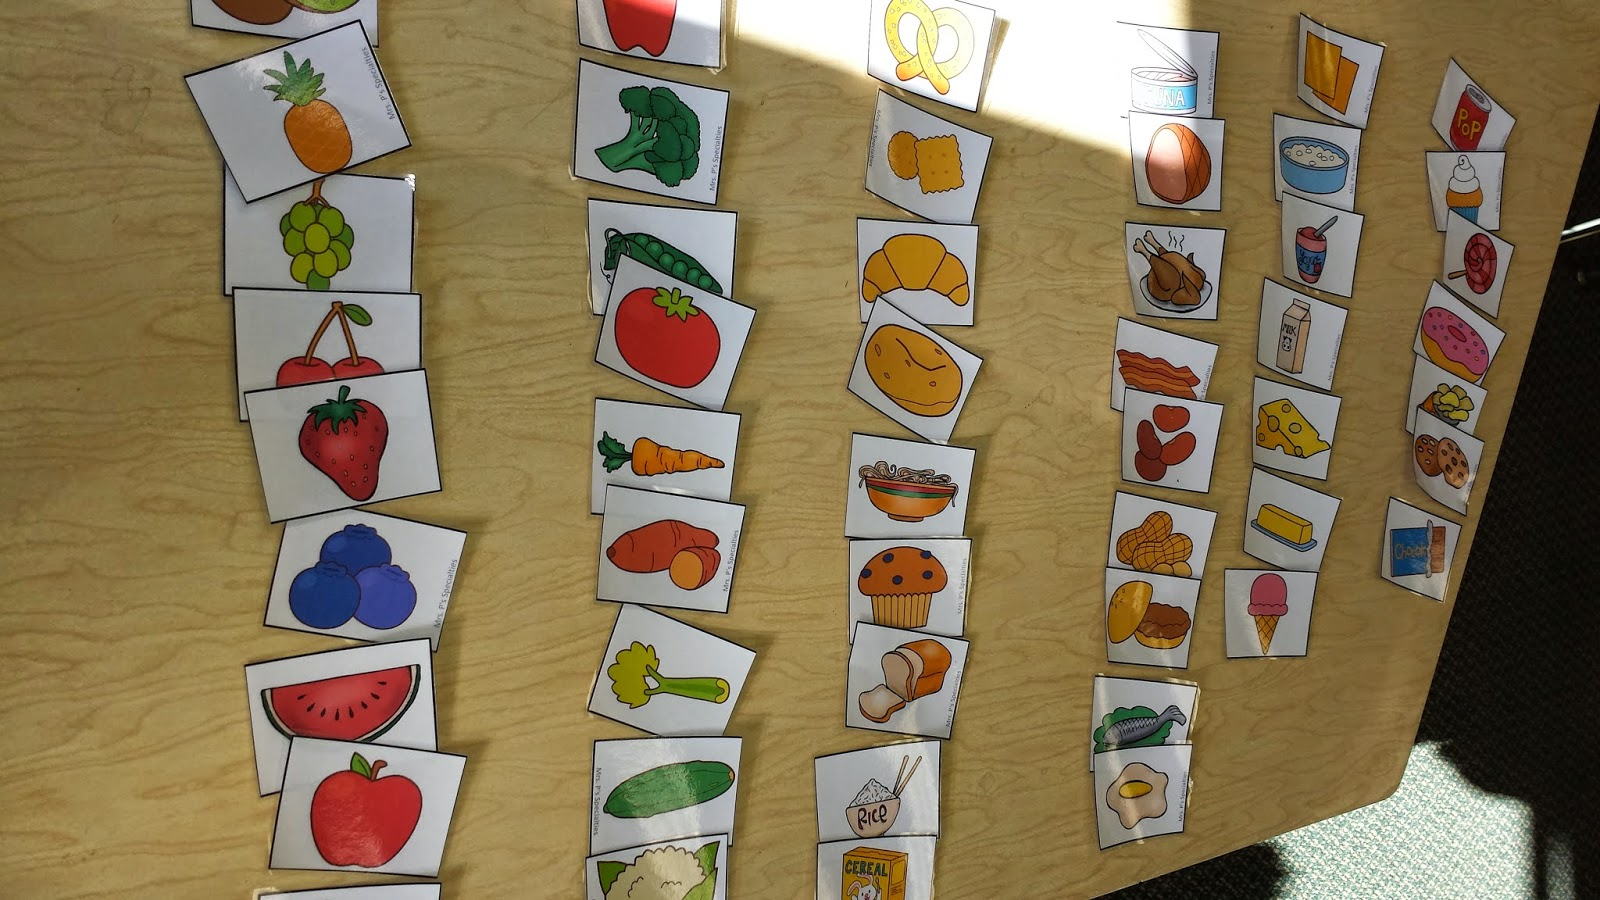 photo of the picture cards we were sorting by food group